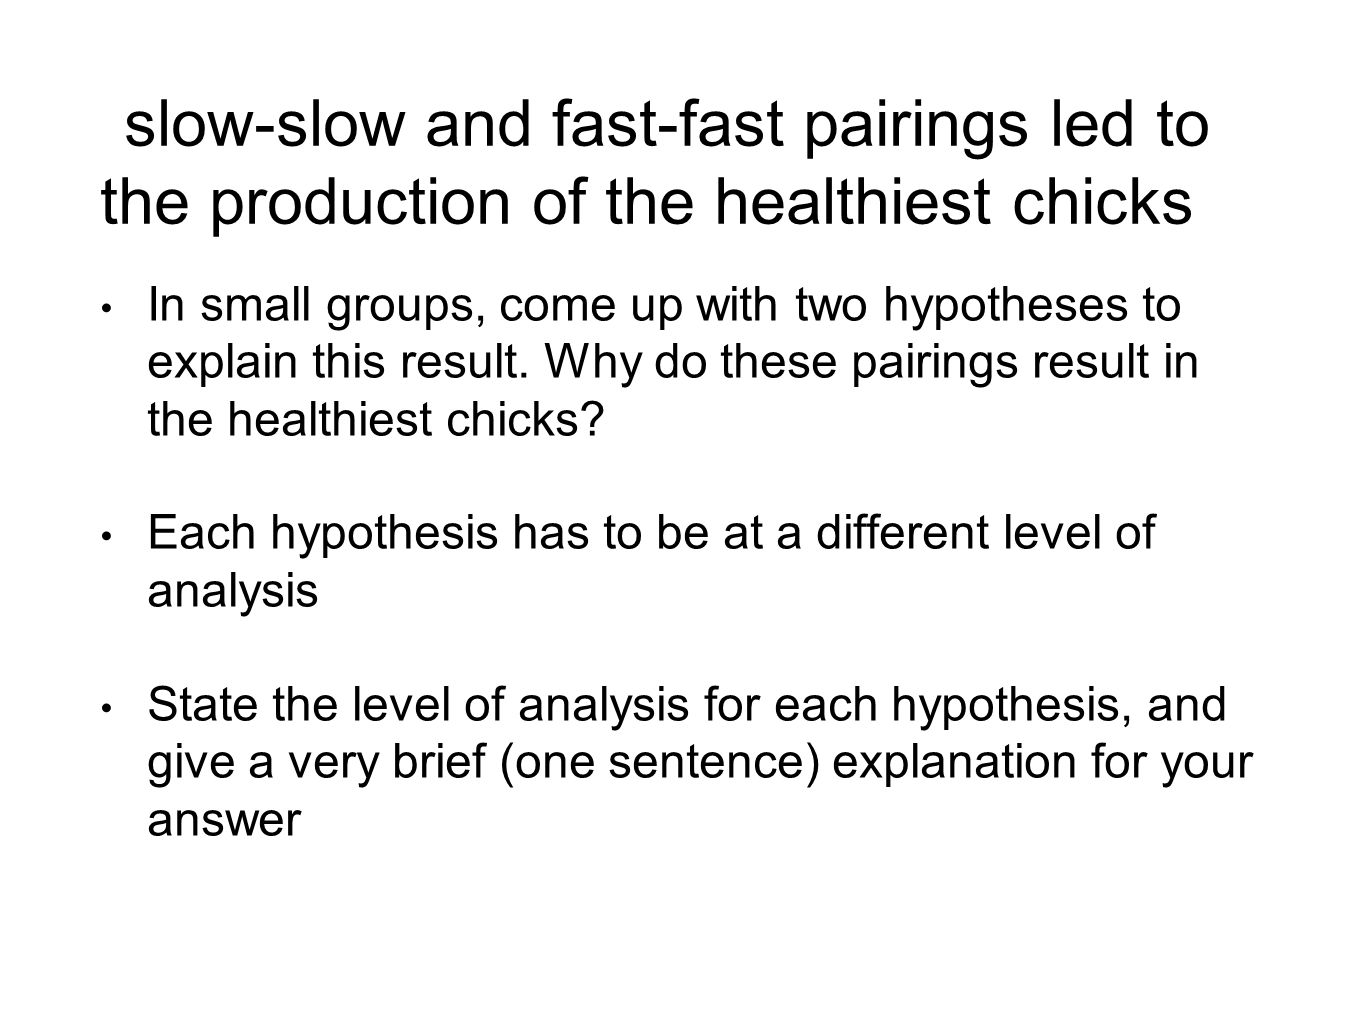 slow-slow and fast-fast pairings led to the production of the healthiest chicks In small groups, come up with two hypotheses to explain this result.